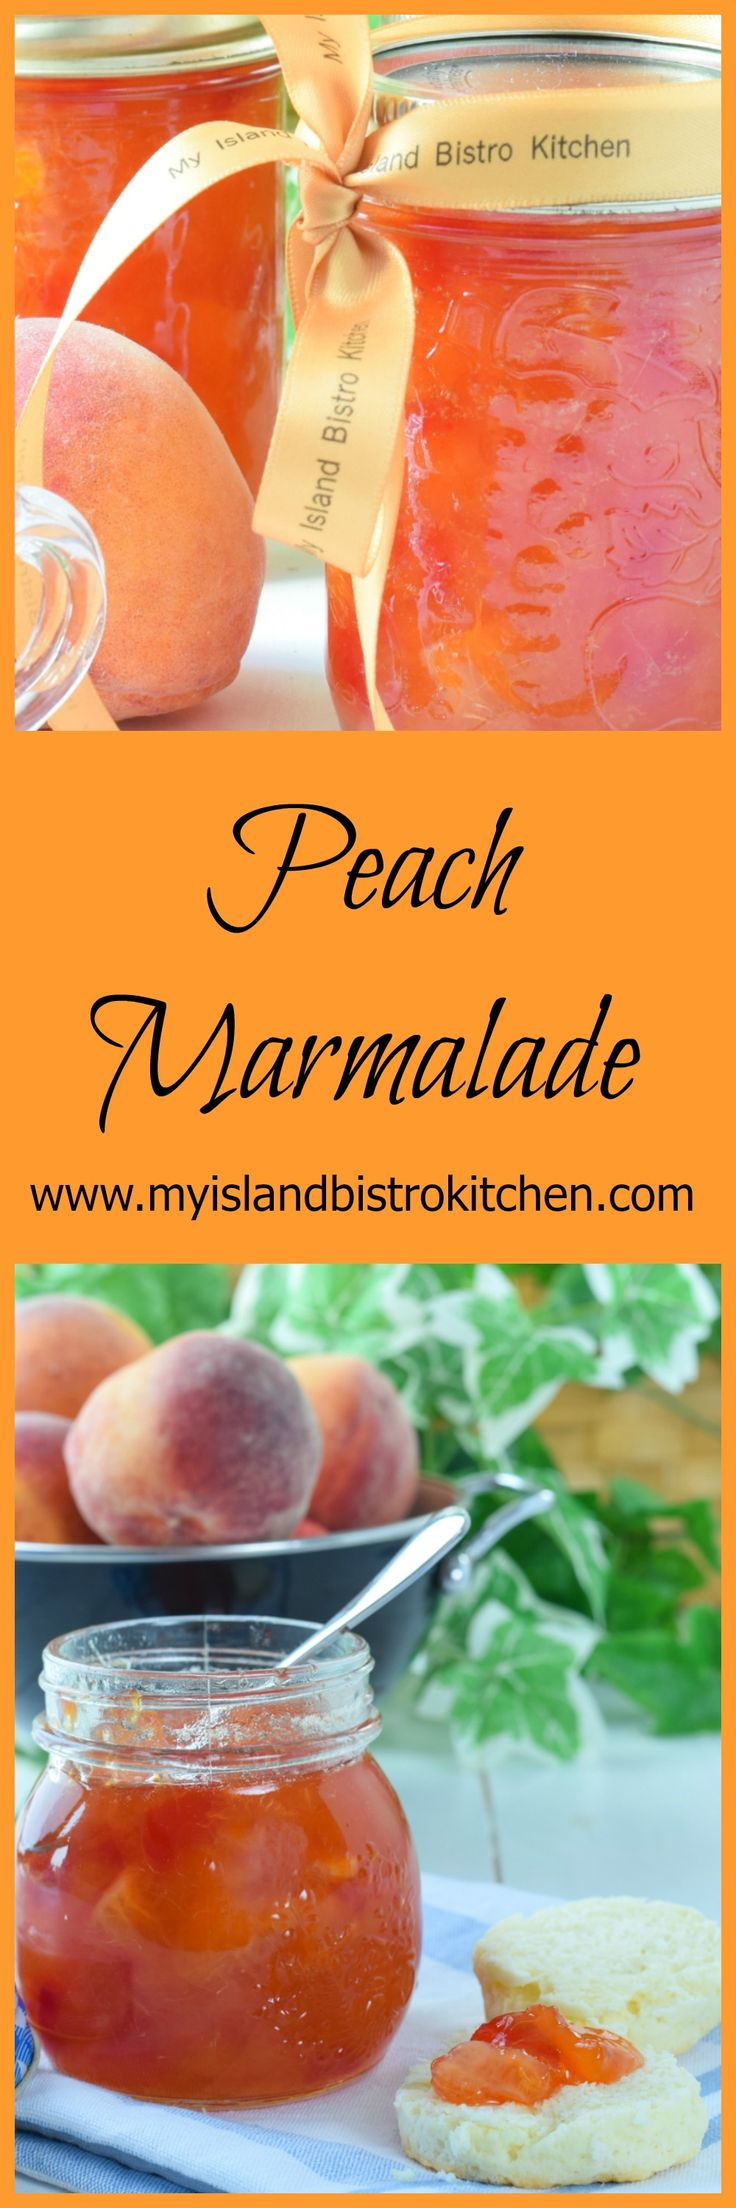 Delicious peach marmalade made with fresh peaches, orange, lemon, maraschino cherries, and a splash of Peach Schnapps. Serve on toast, biscuits, or scones.